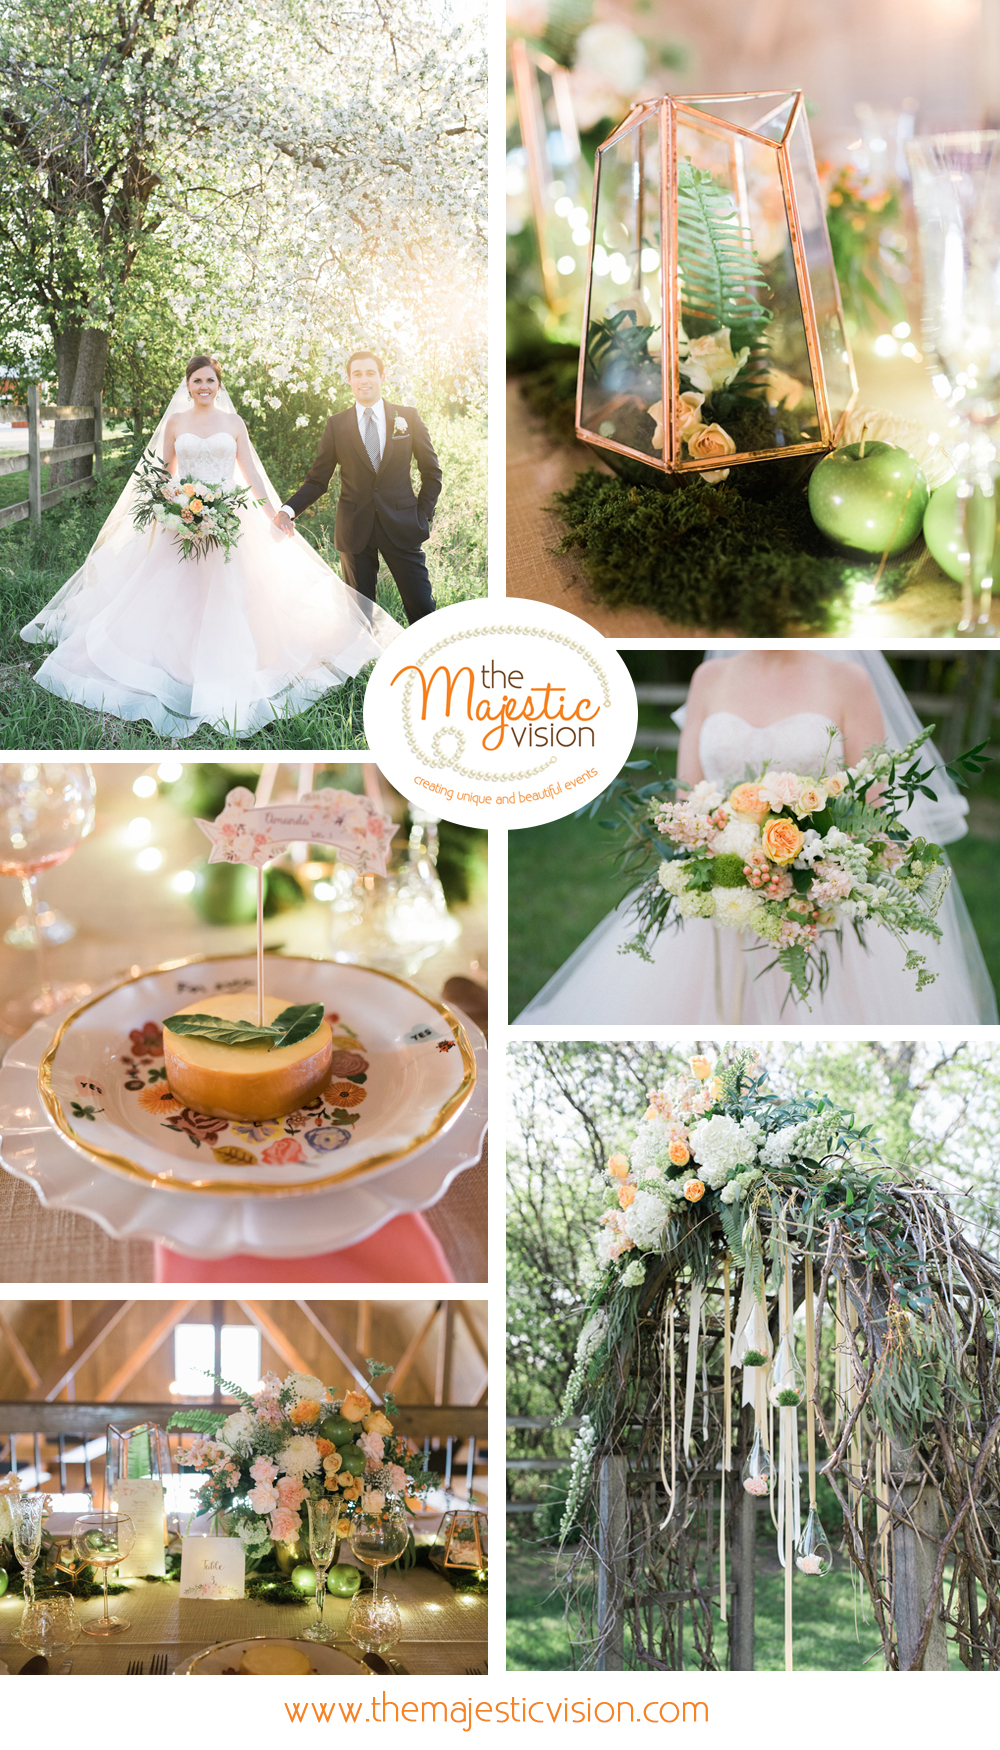 Elegant Blush and Pink Barn Wedding | The Majestic Vision Wedding Planning | Rustic Manor in Milwaukee, WI | www.themajesticvision.com | Elizabeth Haase Photography